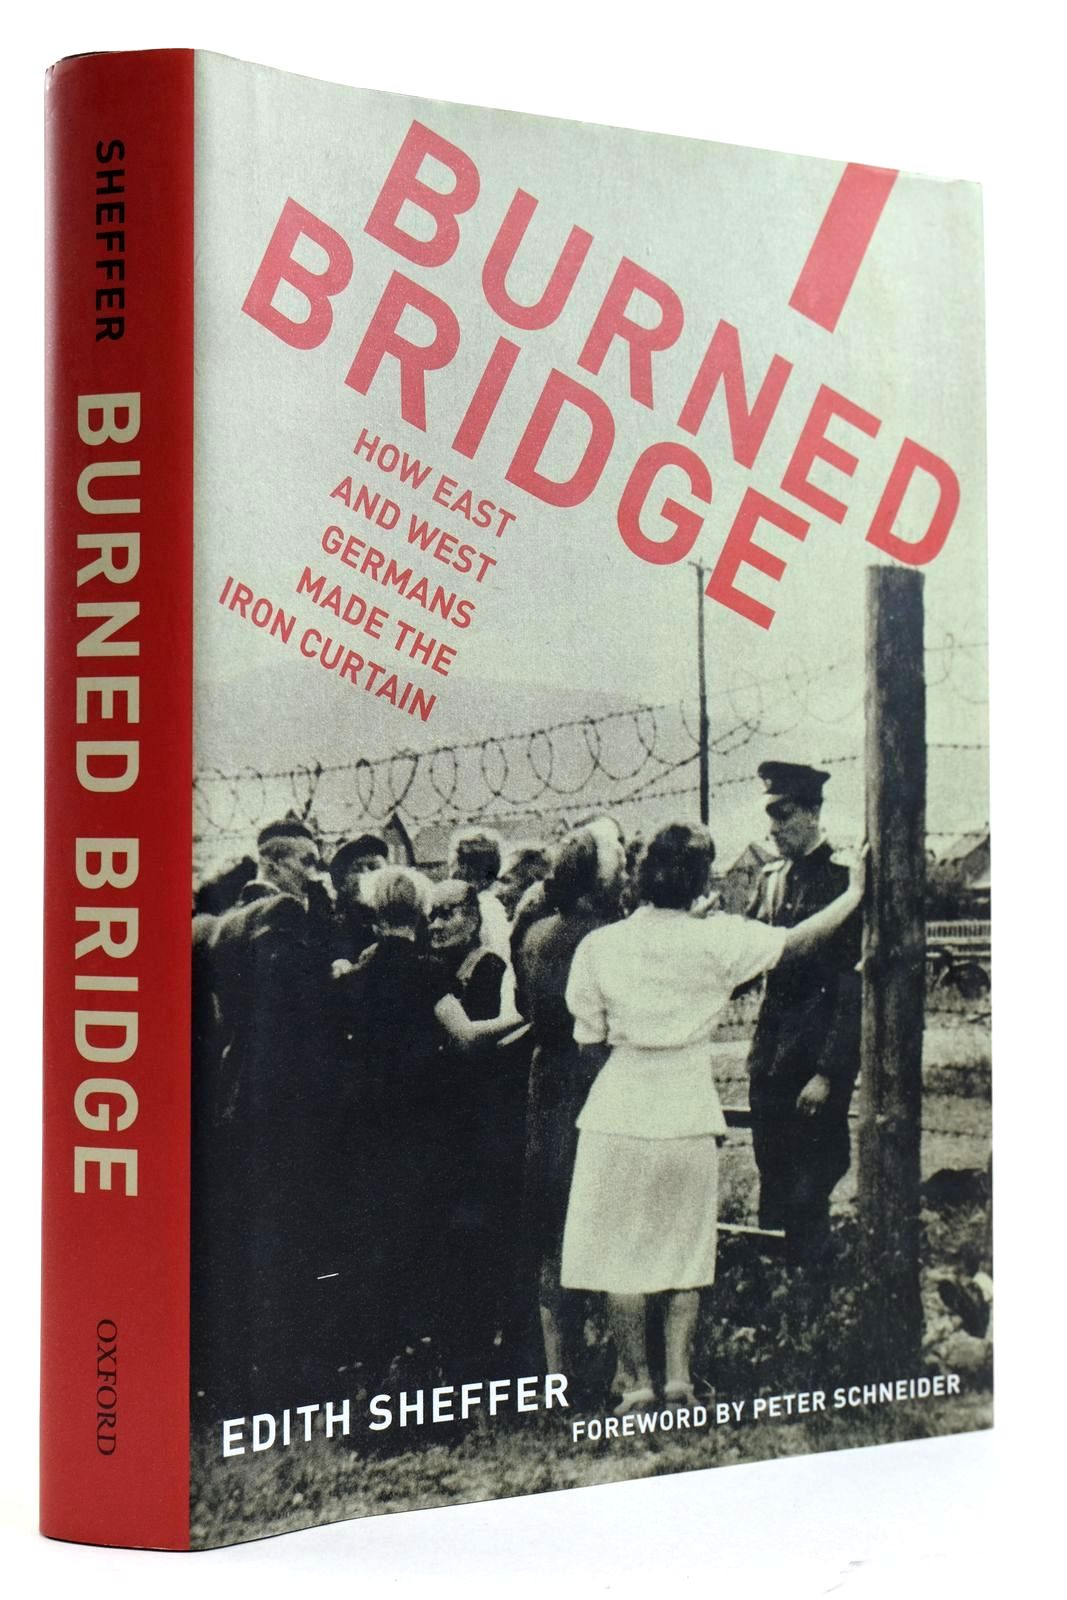 Photo of BURNED BRIDGE HOW EAST AND WEST GERMANS MADE THE IRON CURTAIN- Stock Number: 2132511